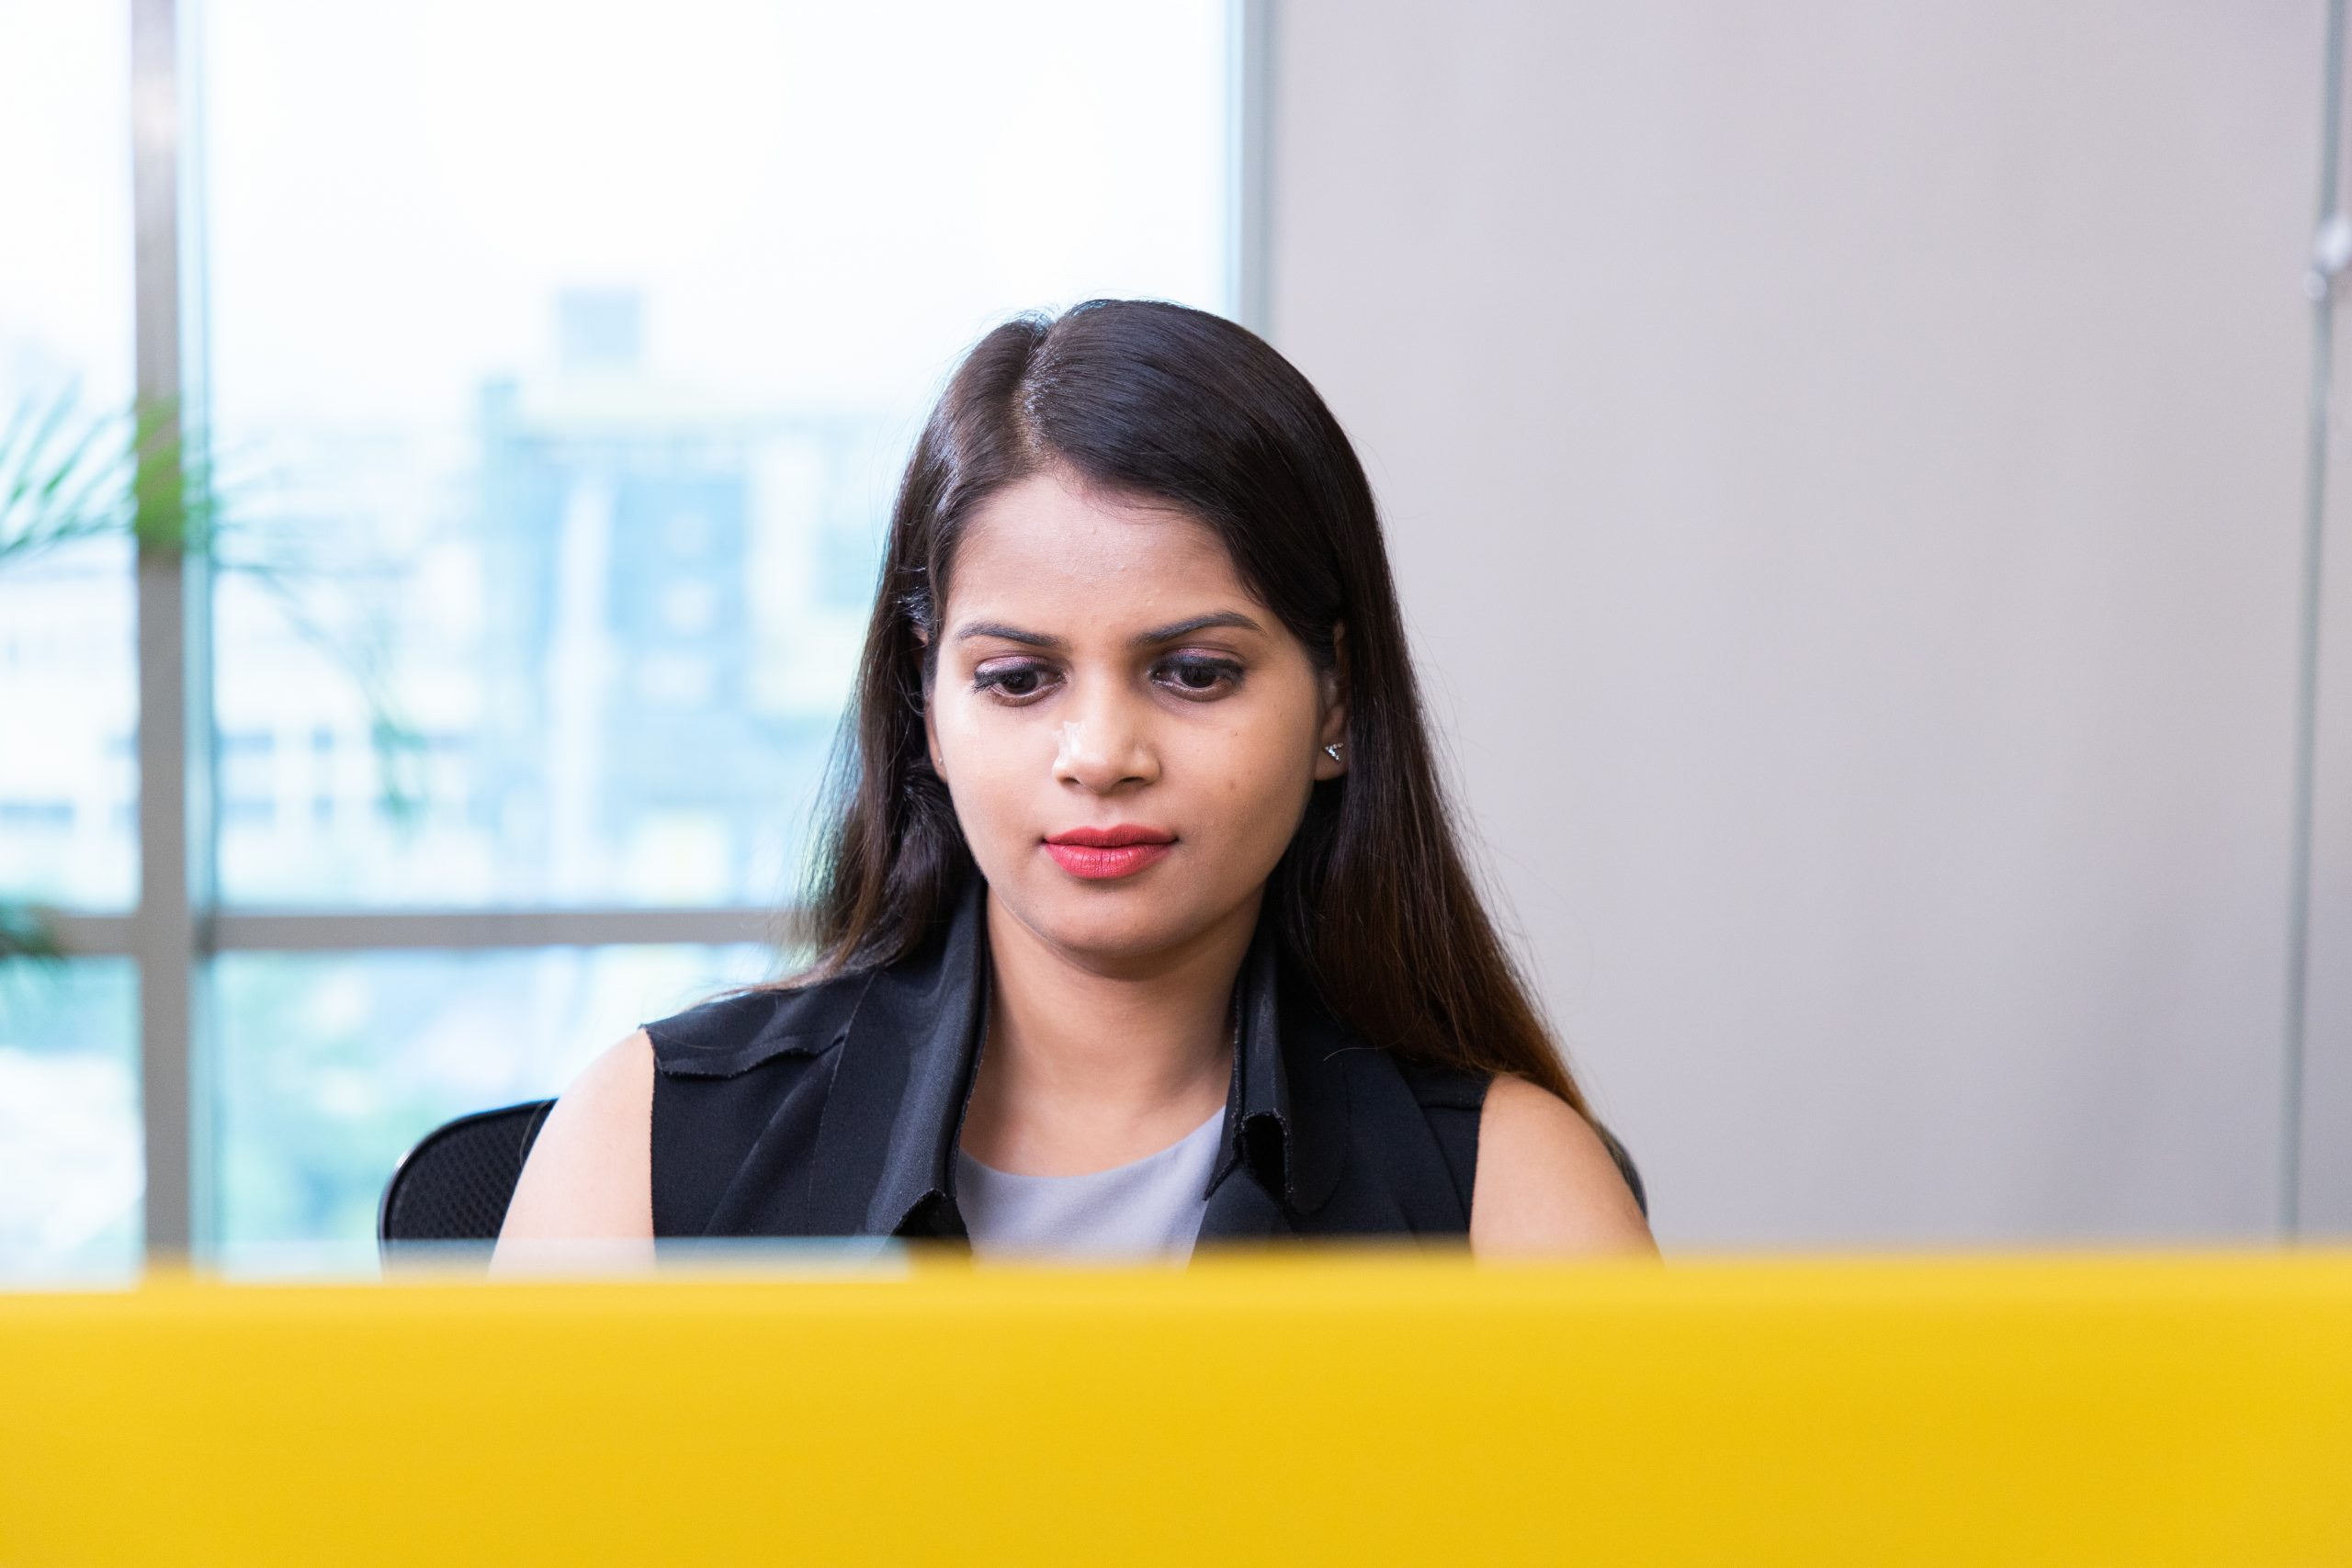 A passionate office girl working